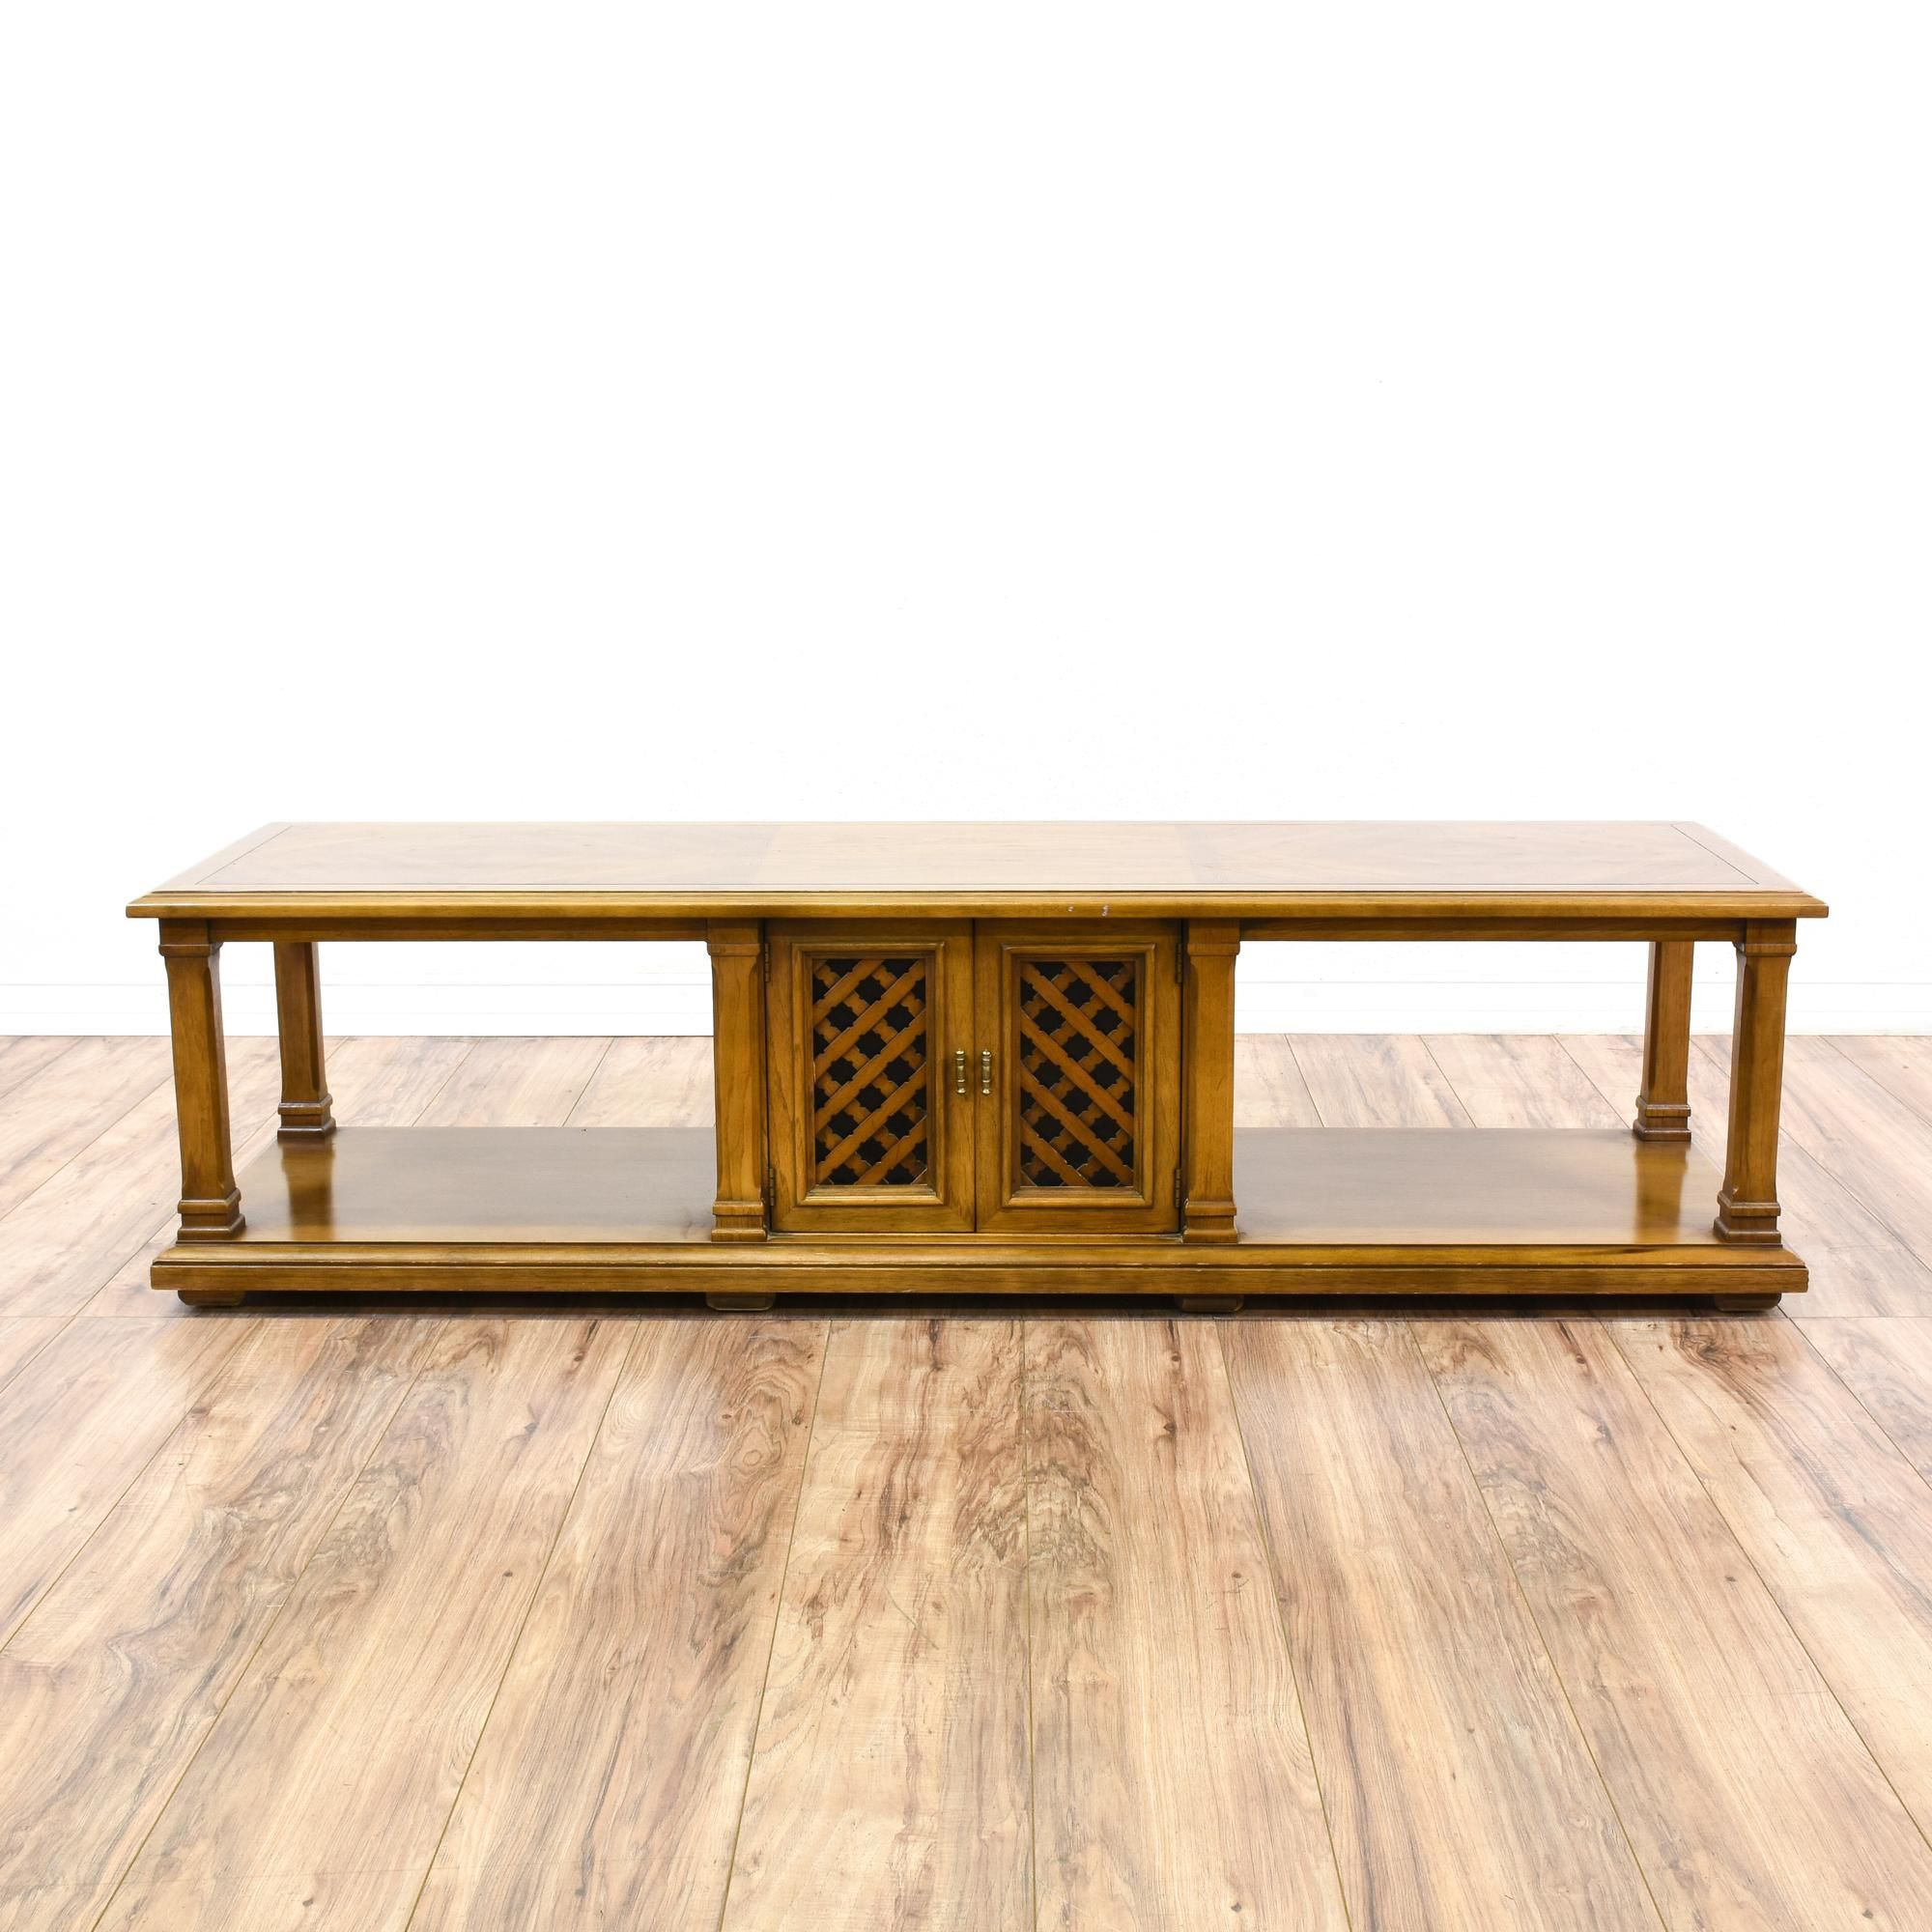 This coffee table is featured in a solid wood with a glossy oak